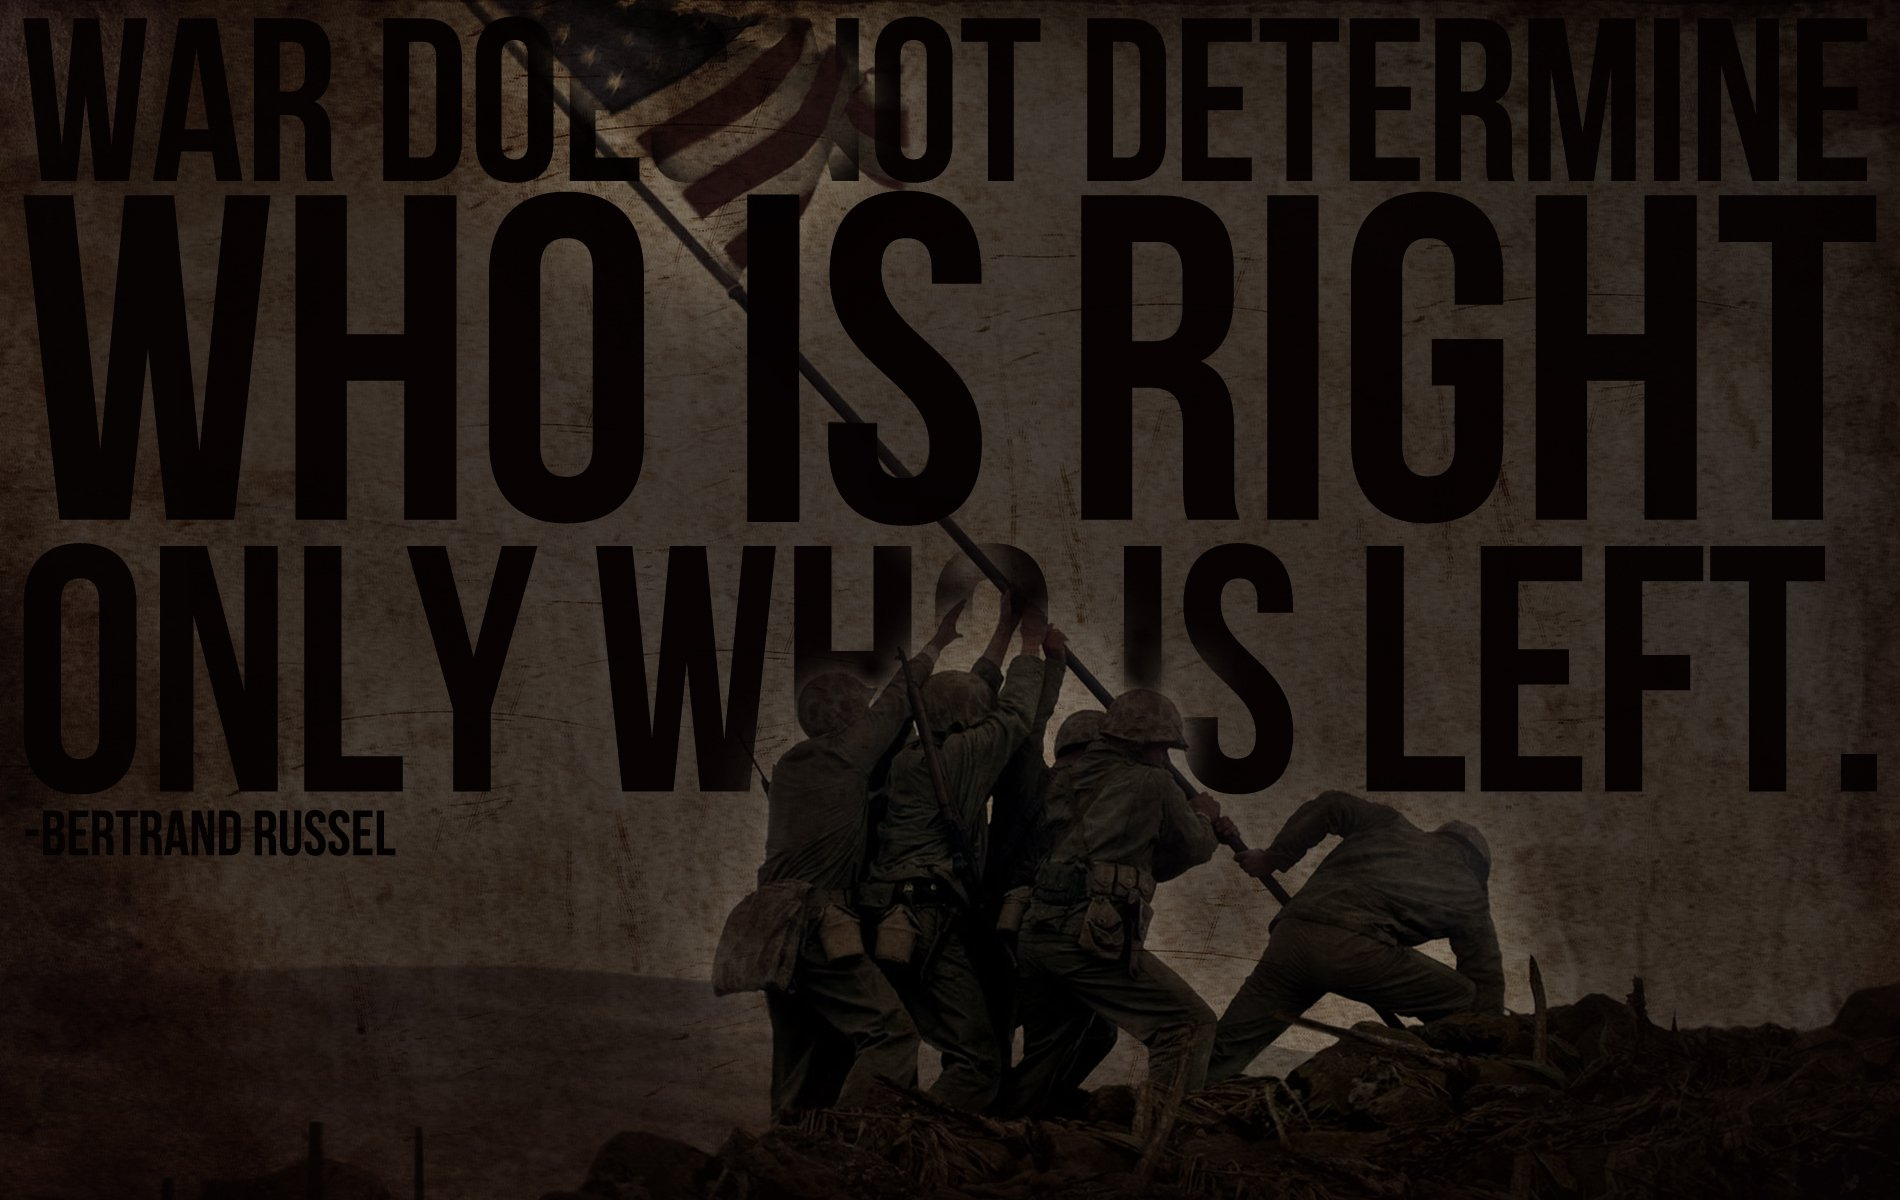 navy quotes and sayings wallpaper quotesgram